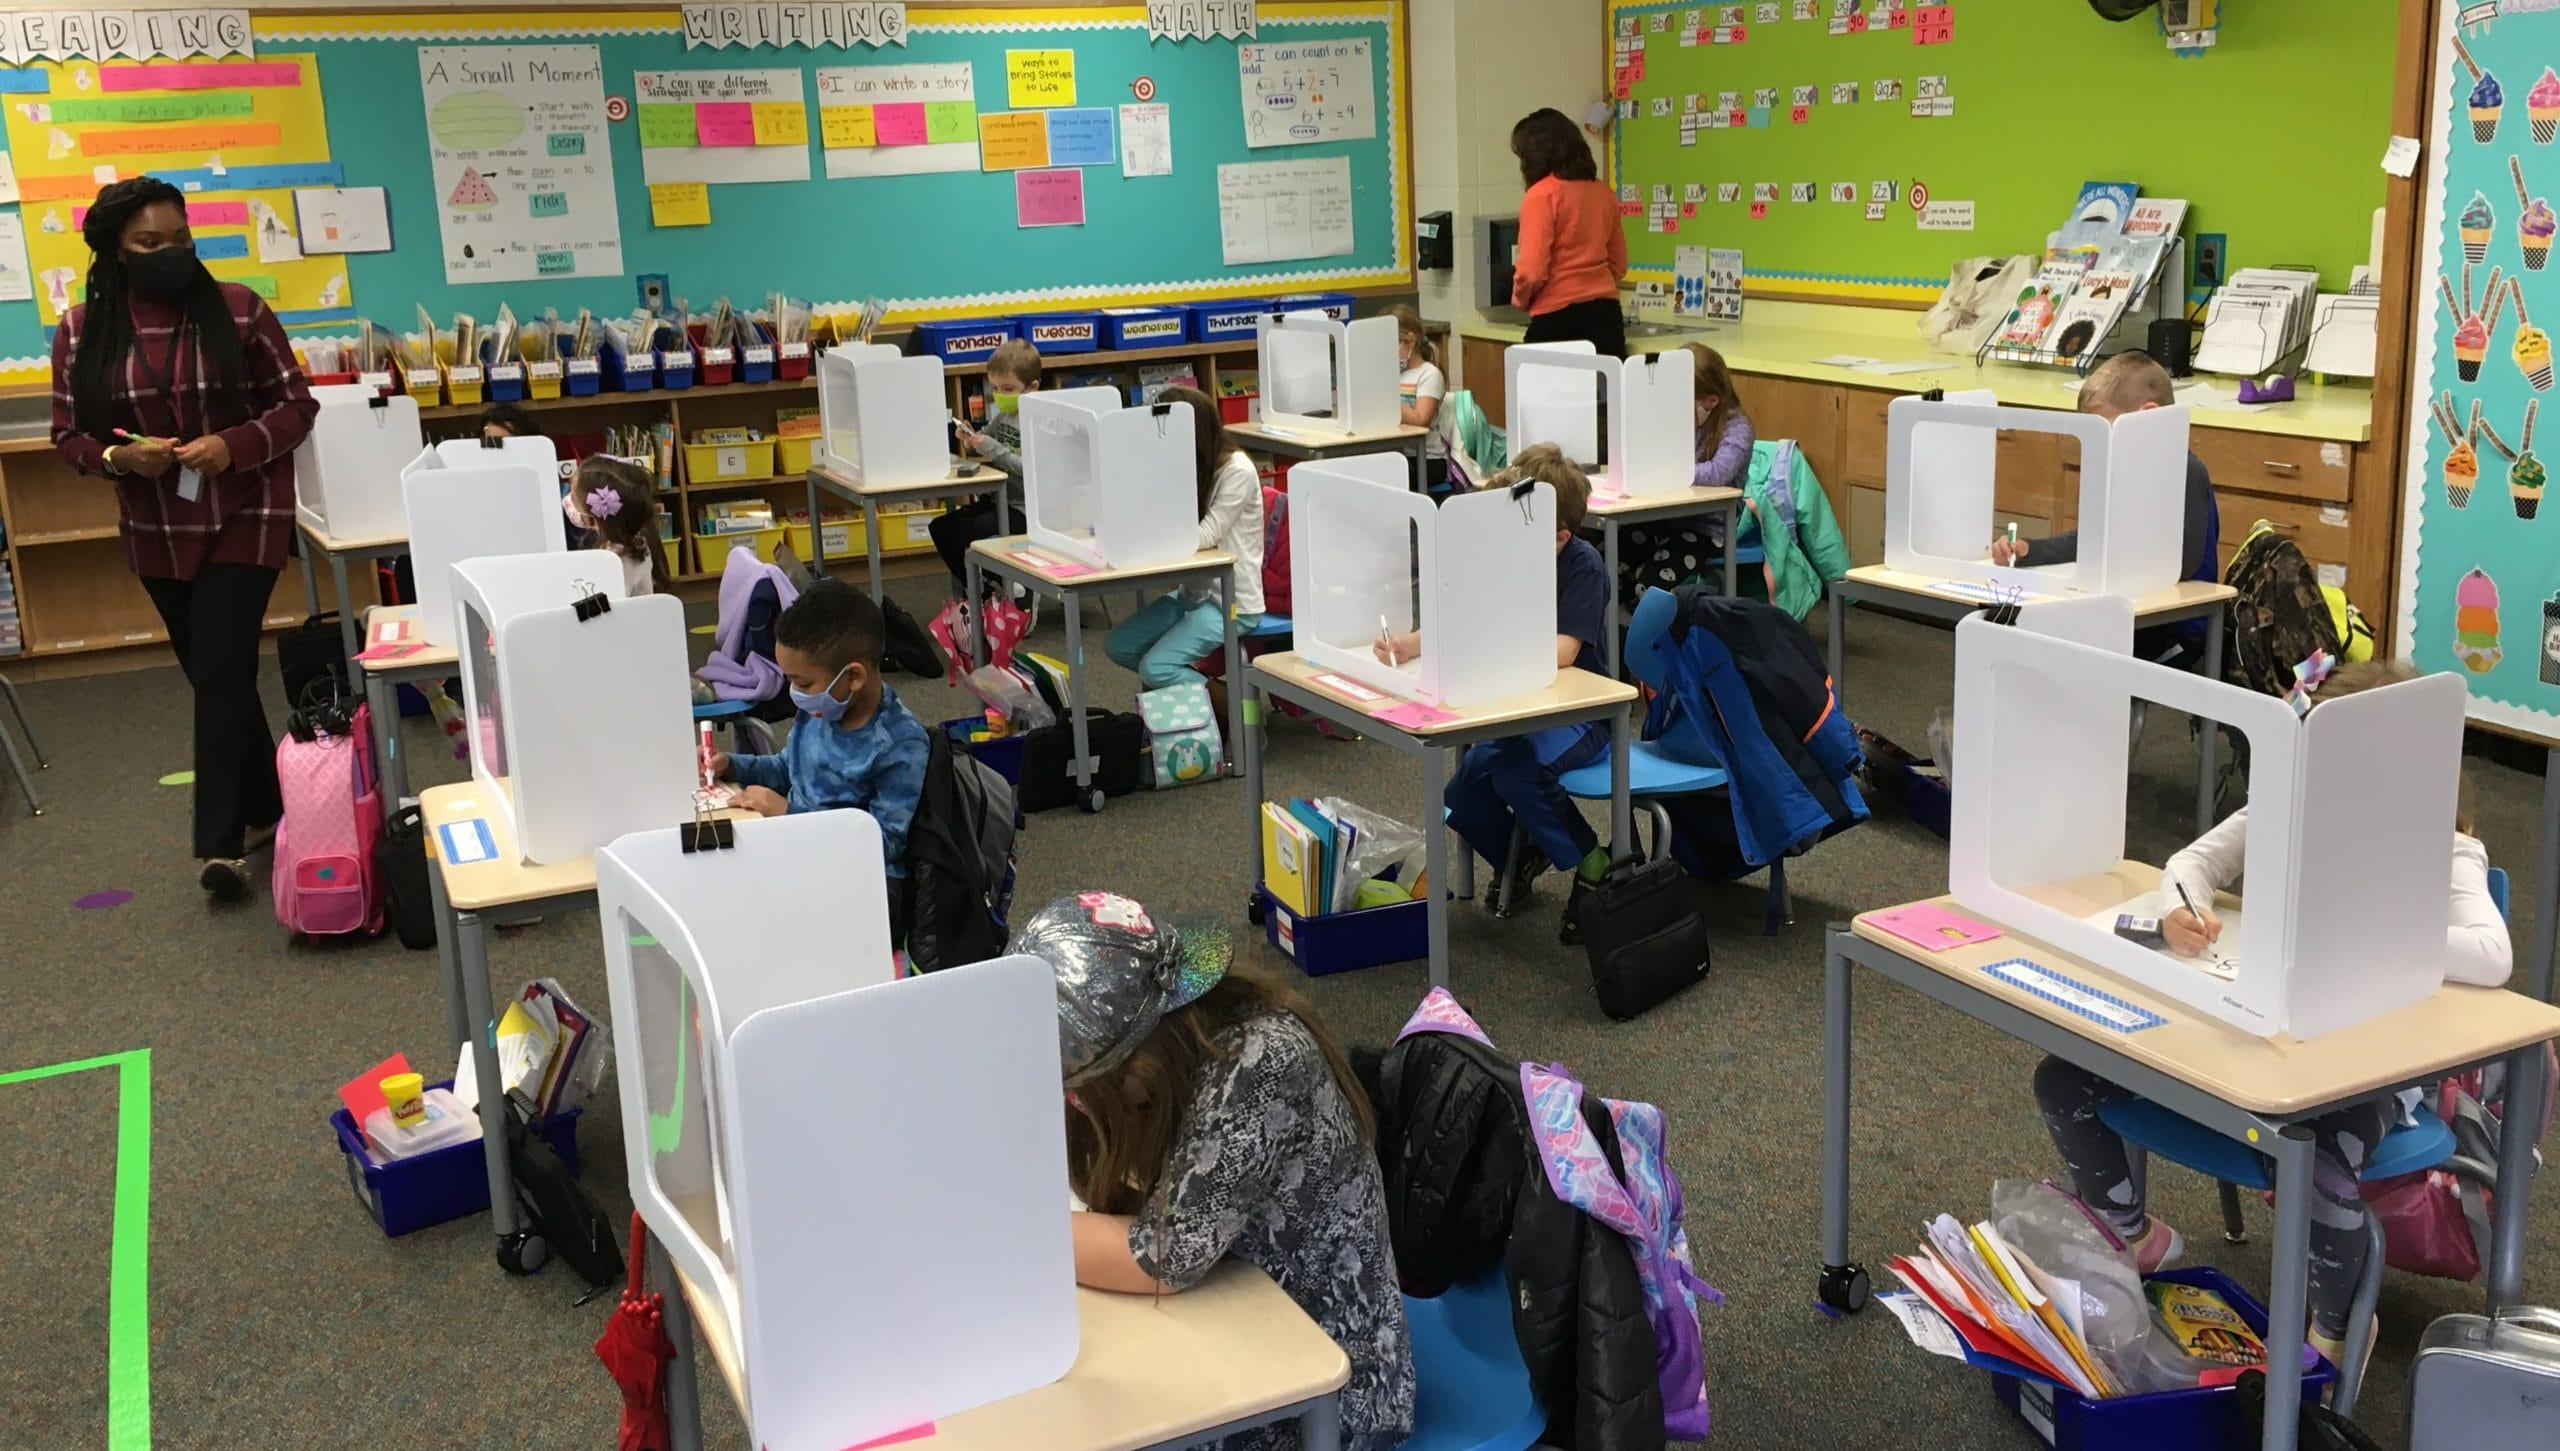 Thousands of students didn't show up for school this year. Where are the children?